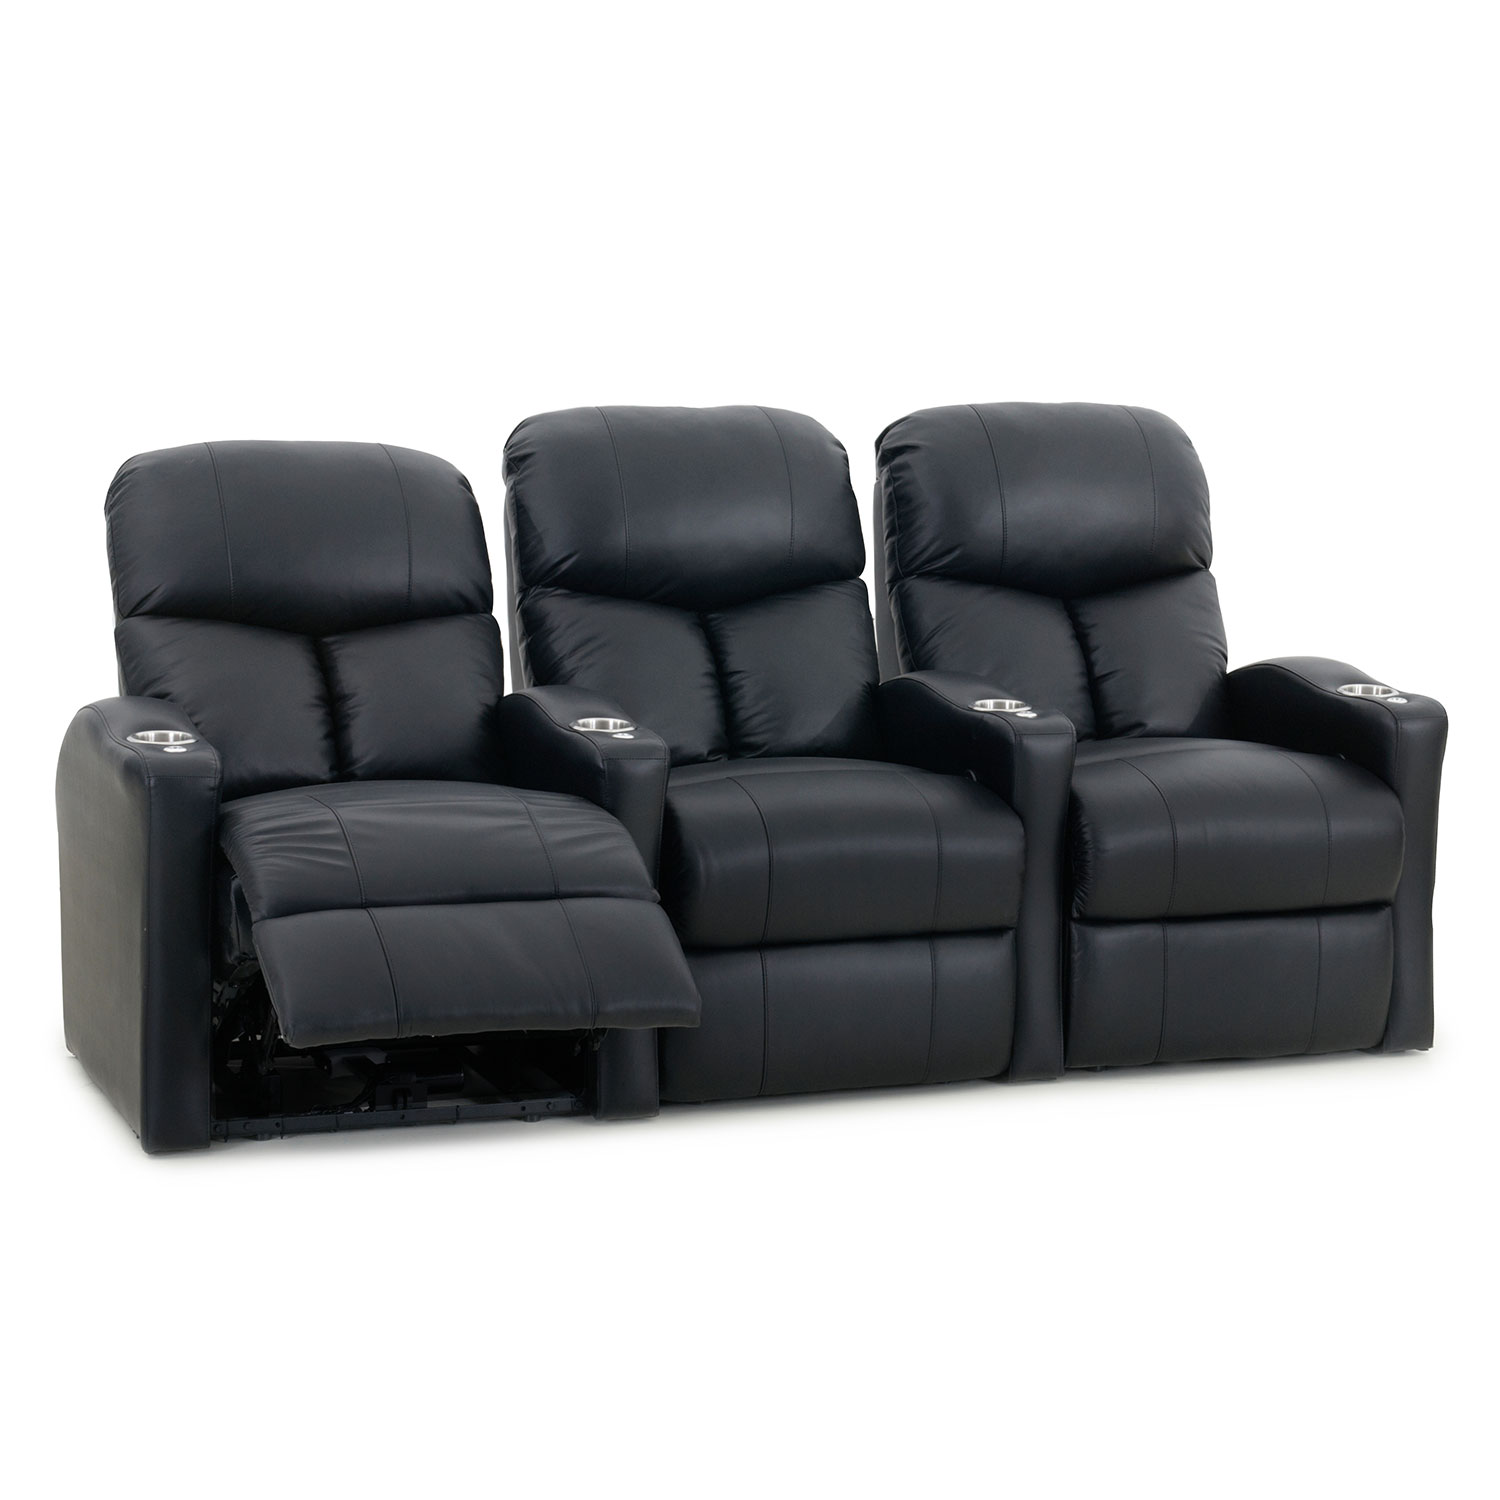 home theater couch seating. bolt 3-seat bonded leather recliner home theatre seating - black : best buy canada theater couch a